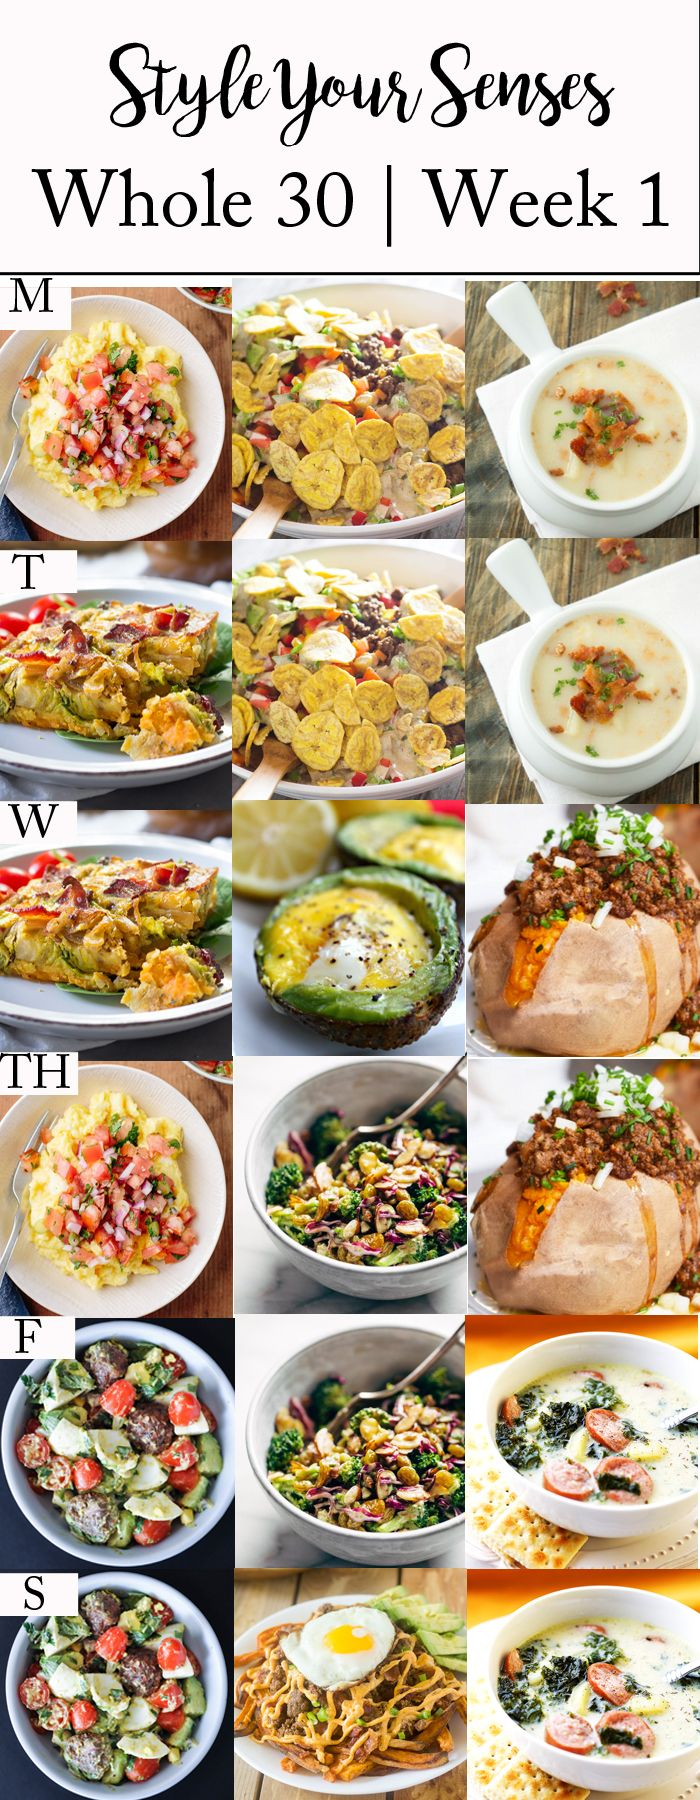 Sharing my Whole 30 Week 1 meal plans, plus I'm confessing why I desperately need a lifestyle change when it comes to food!